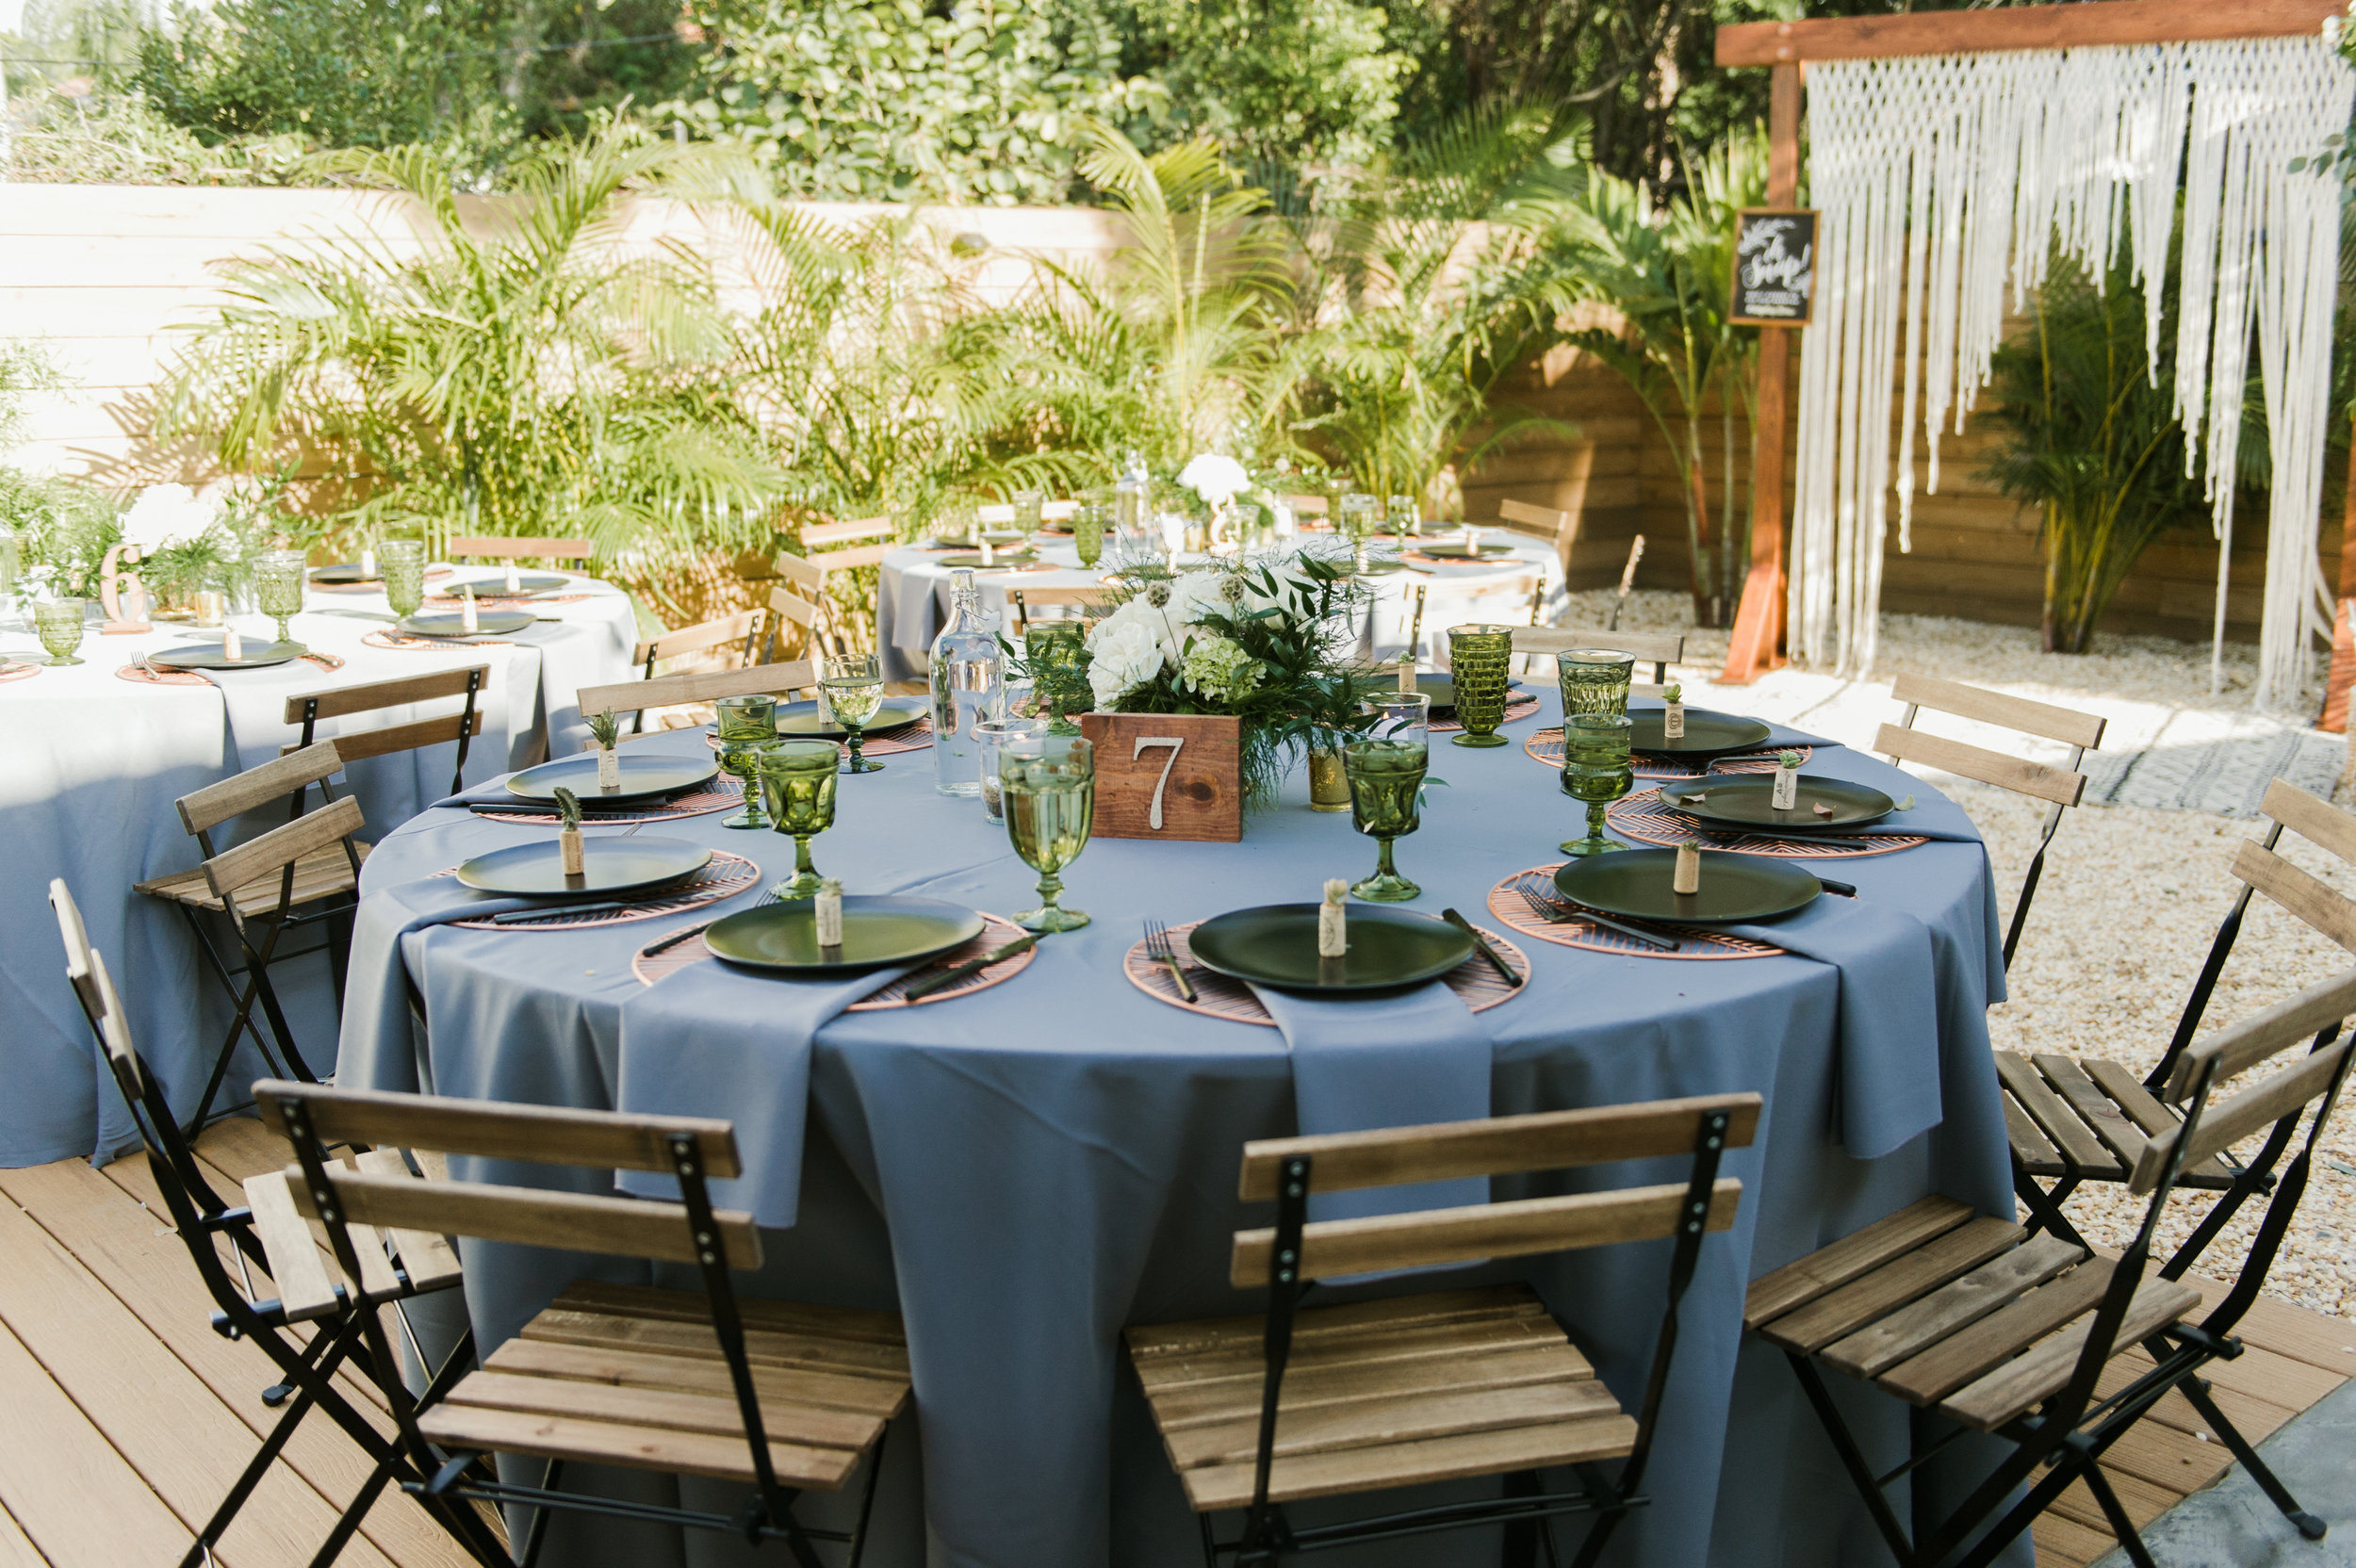 Tables were decorated with dusky blue linens, accented with green jewel tones, and featured natural wood chairs and table numbers.